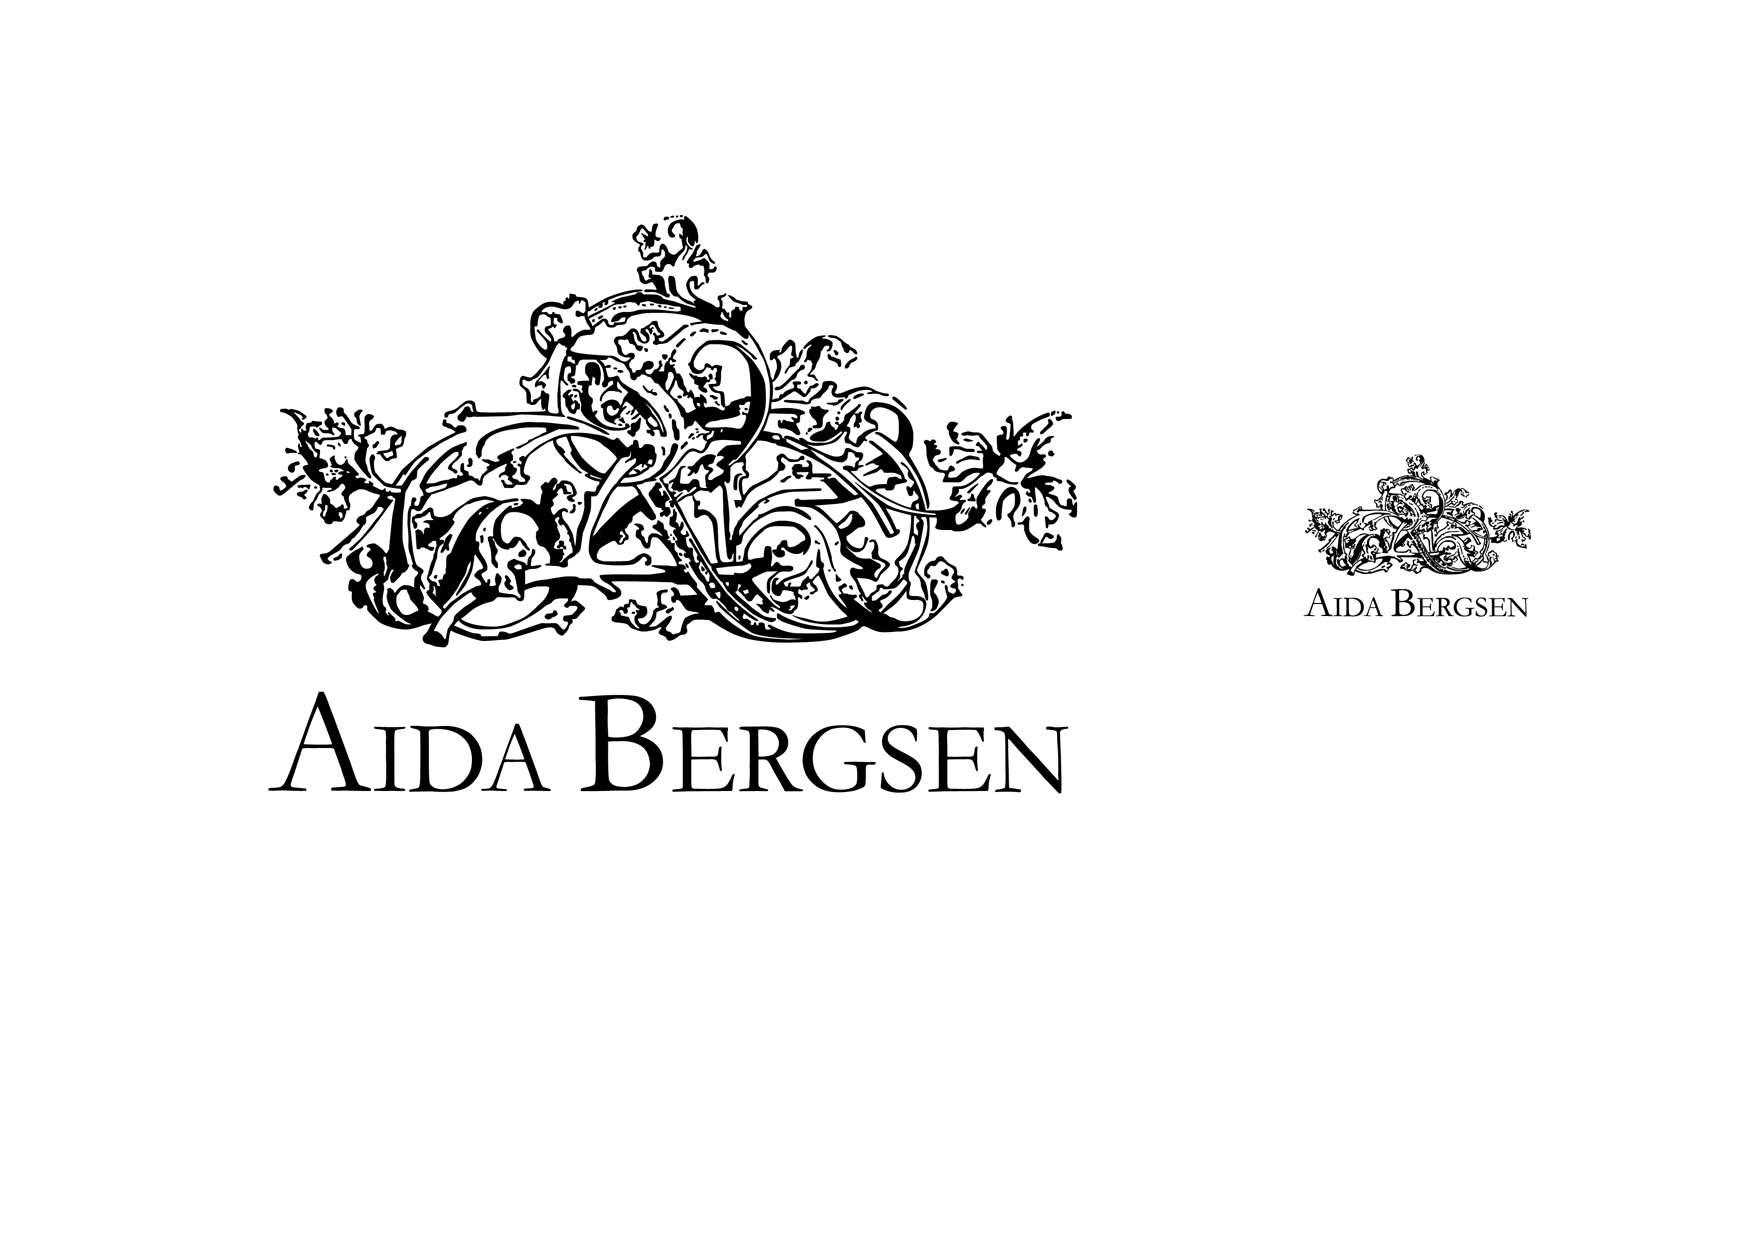 Aida Bergsen Logo Wallpaper